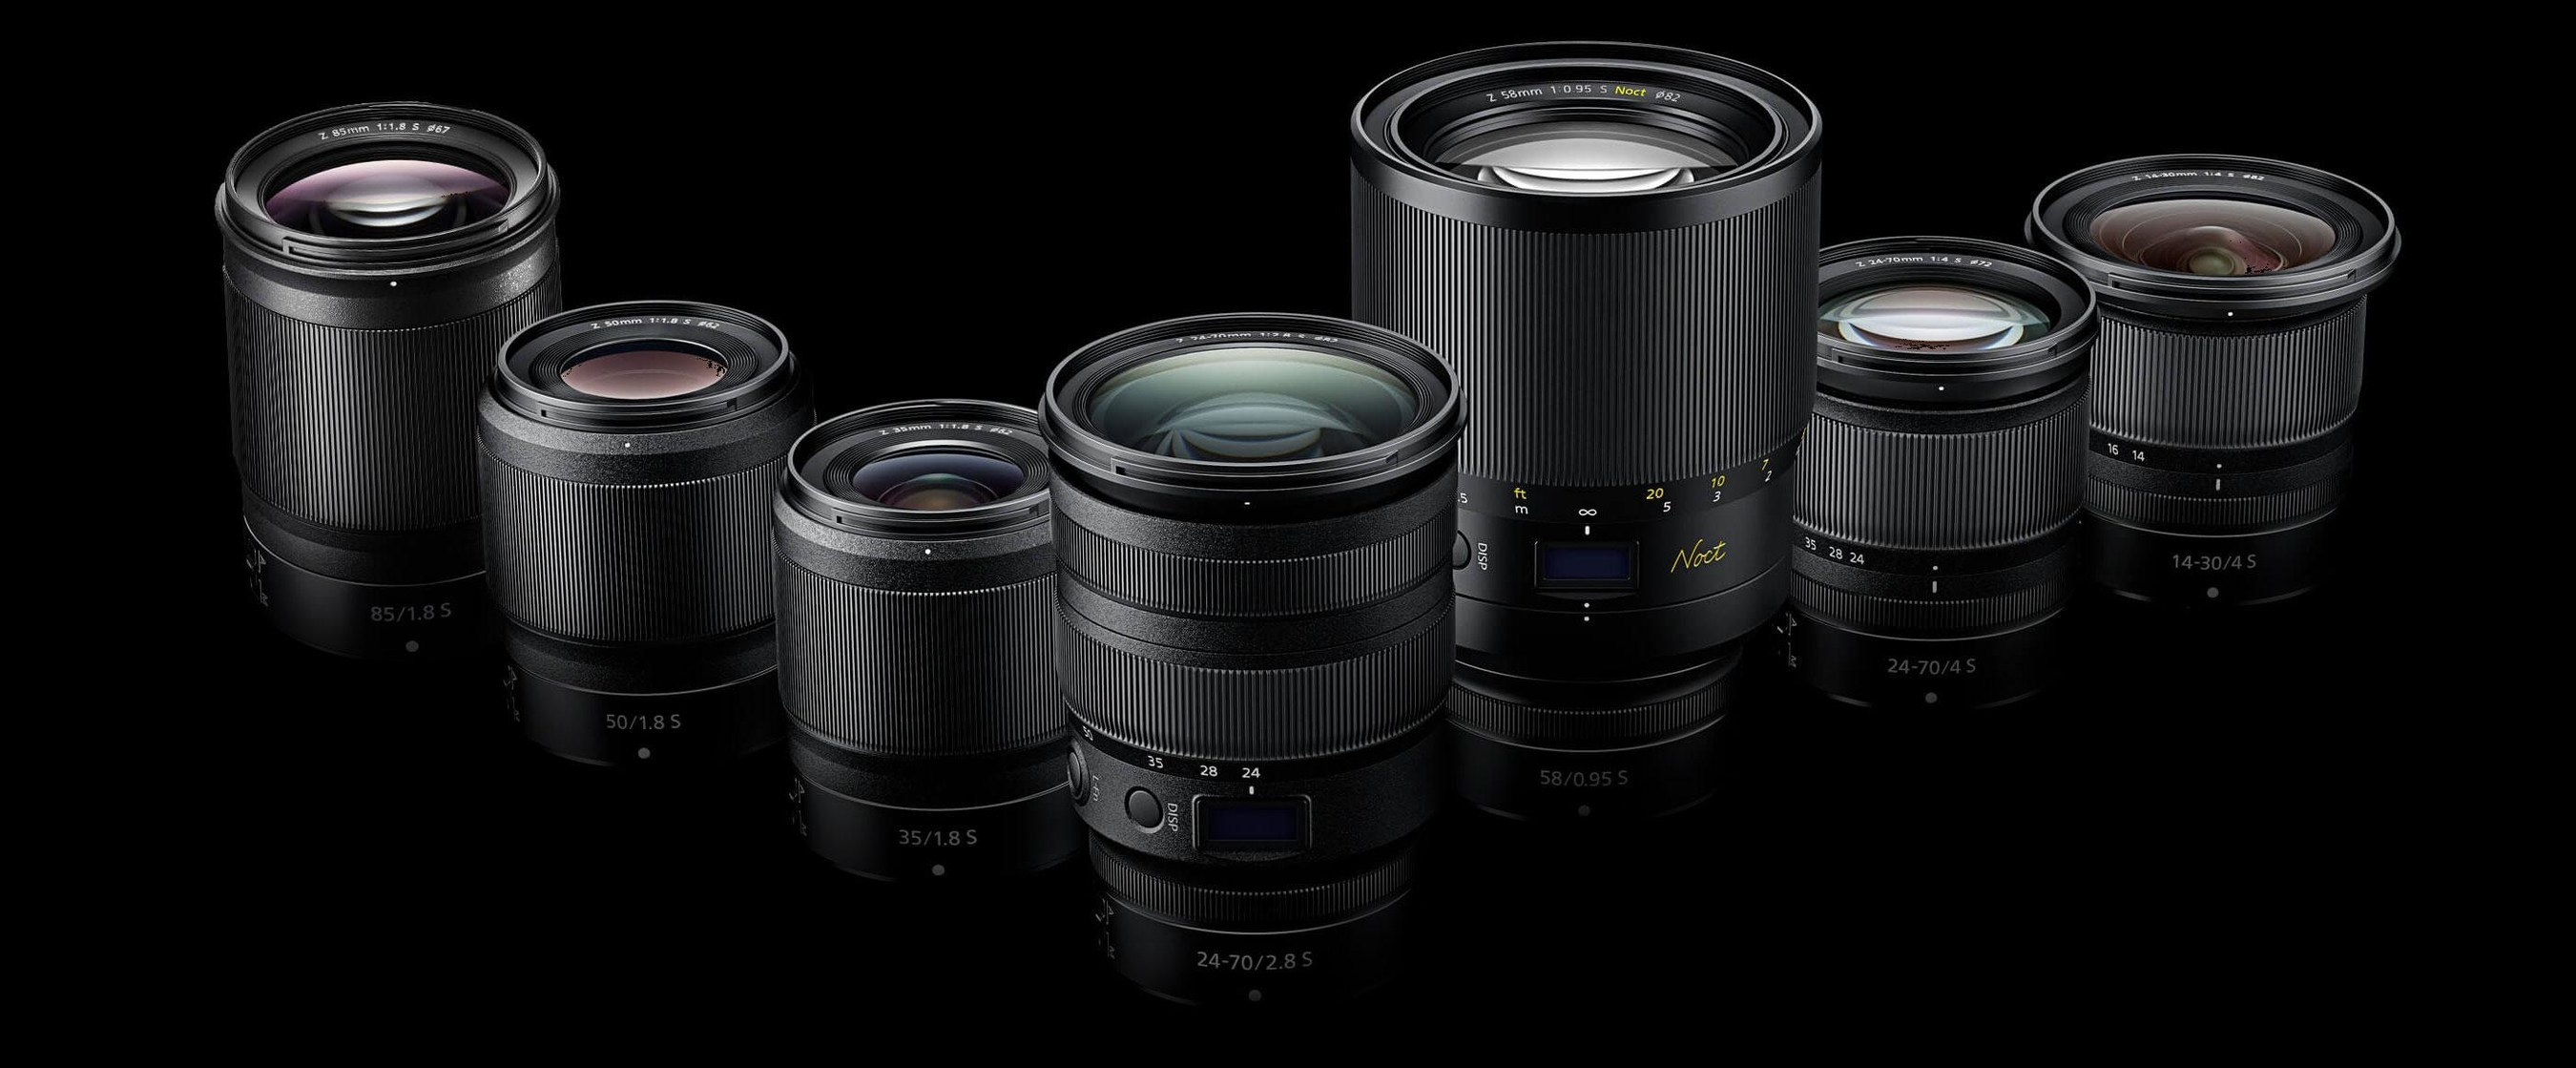 Nikon NIKKOR Z 24mm f/1.8 S is a versatile wide-angle lens